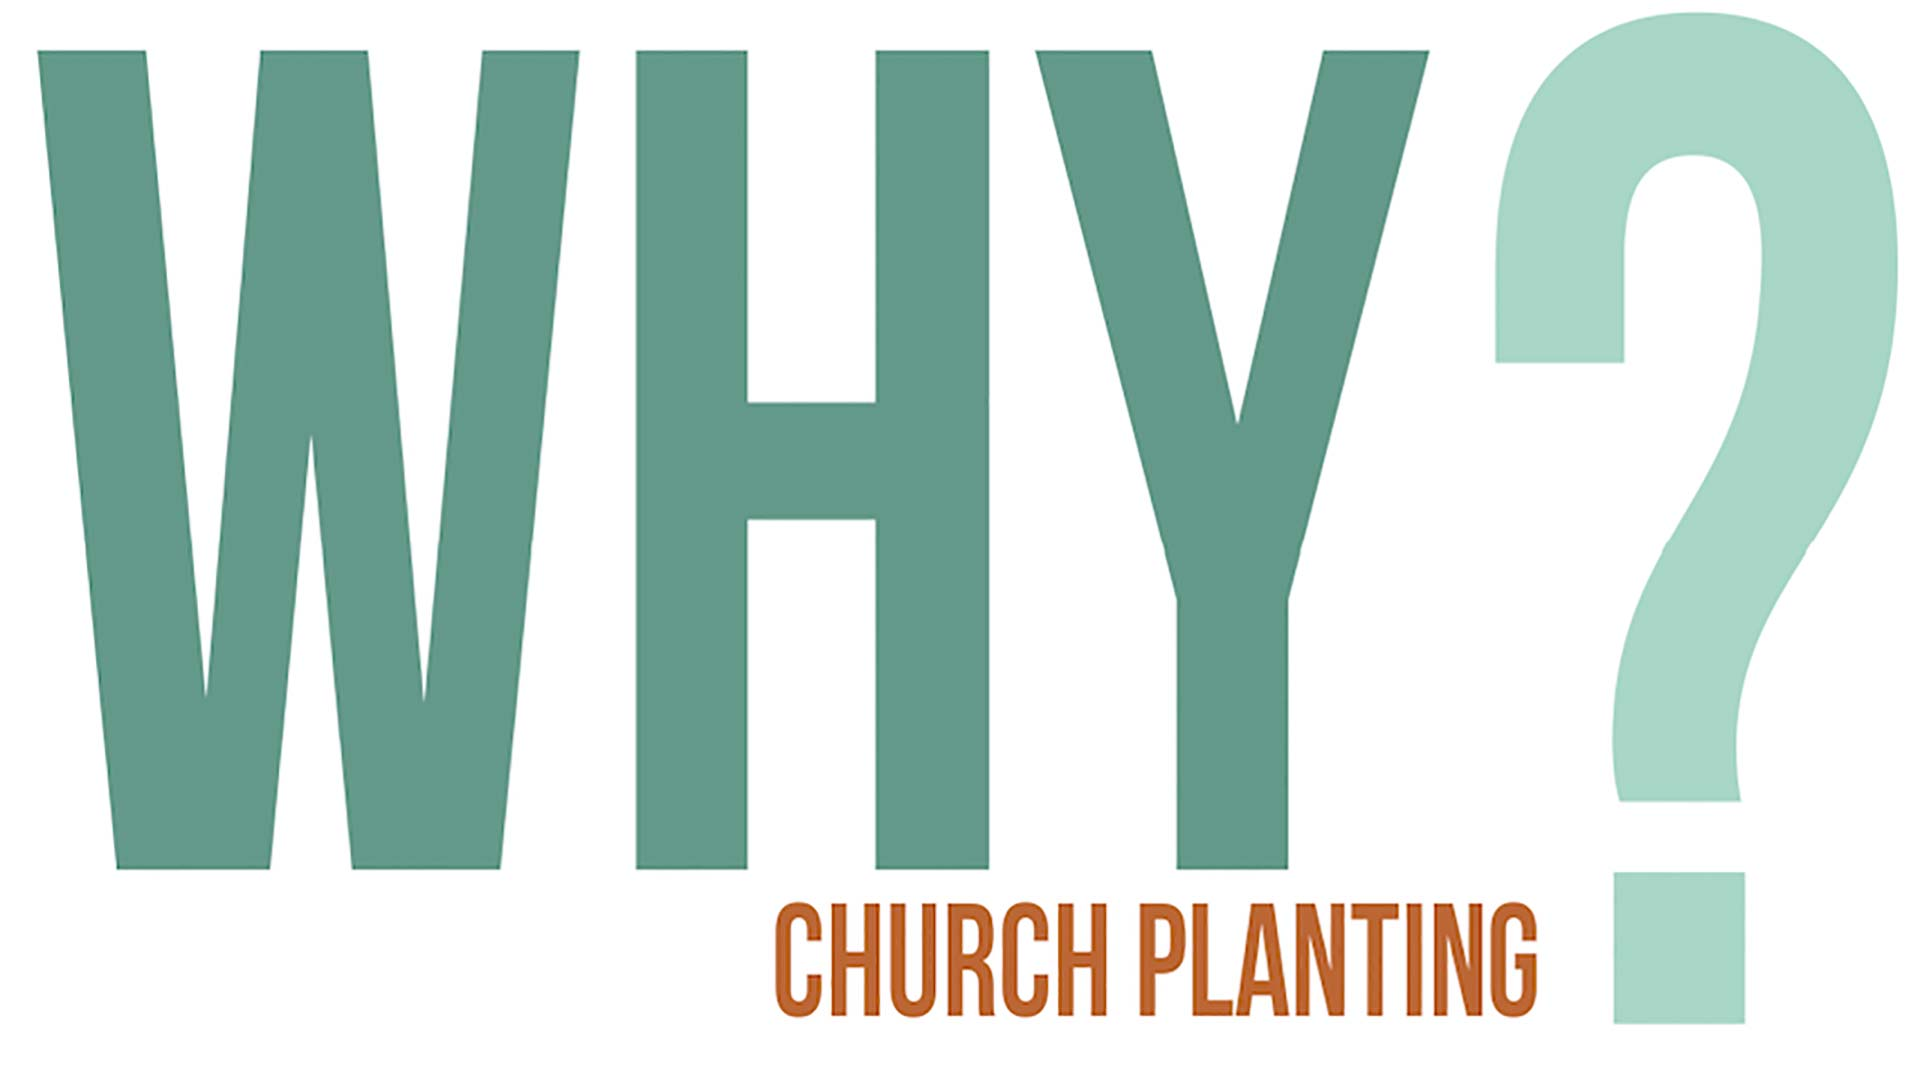 Why Church Planting?